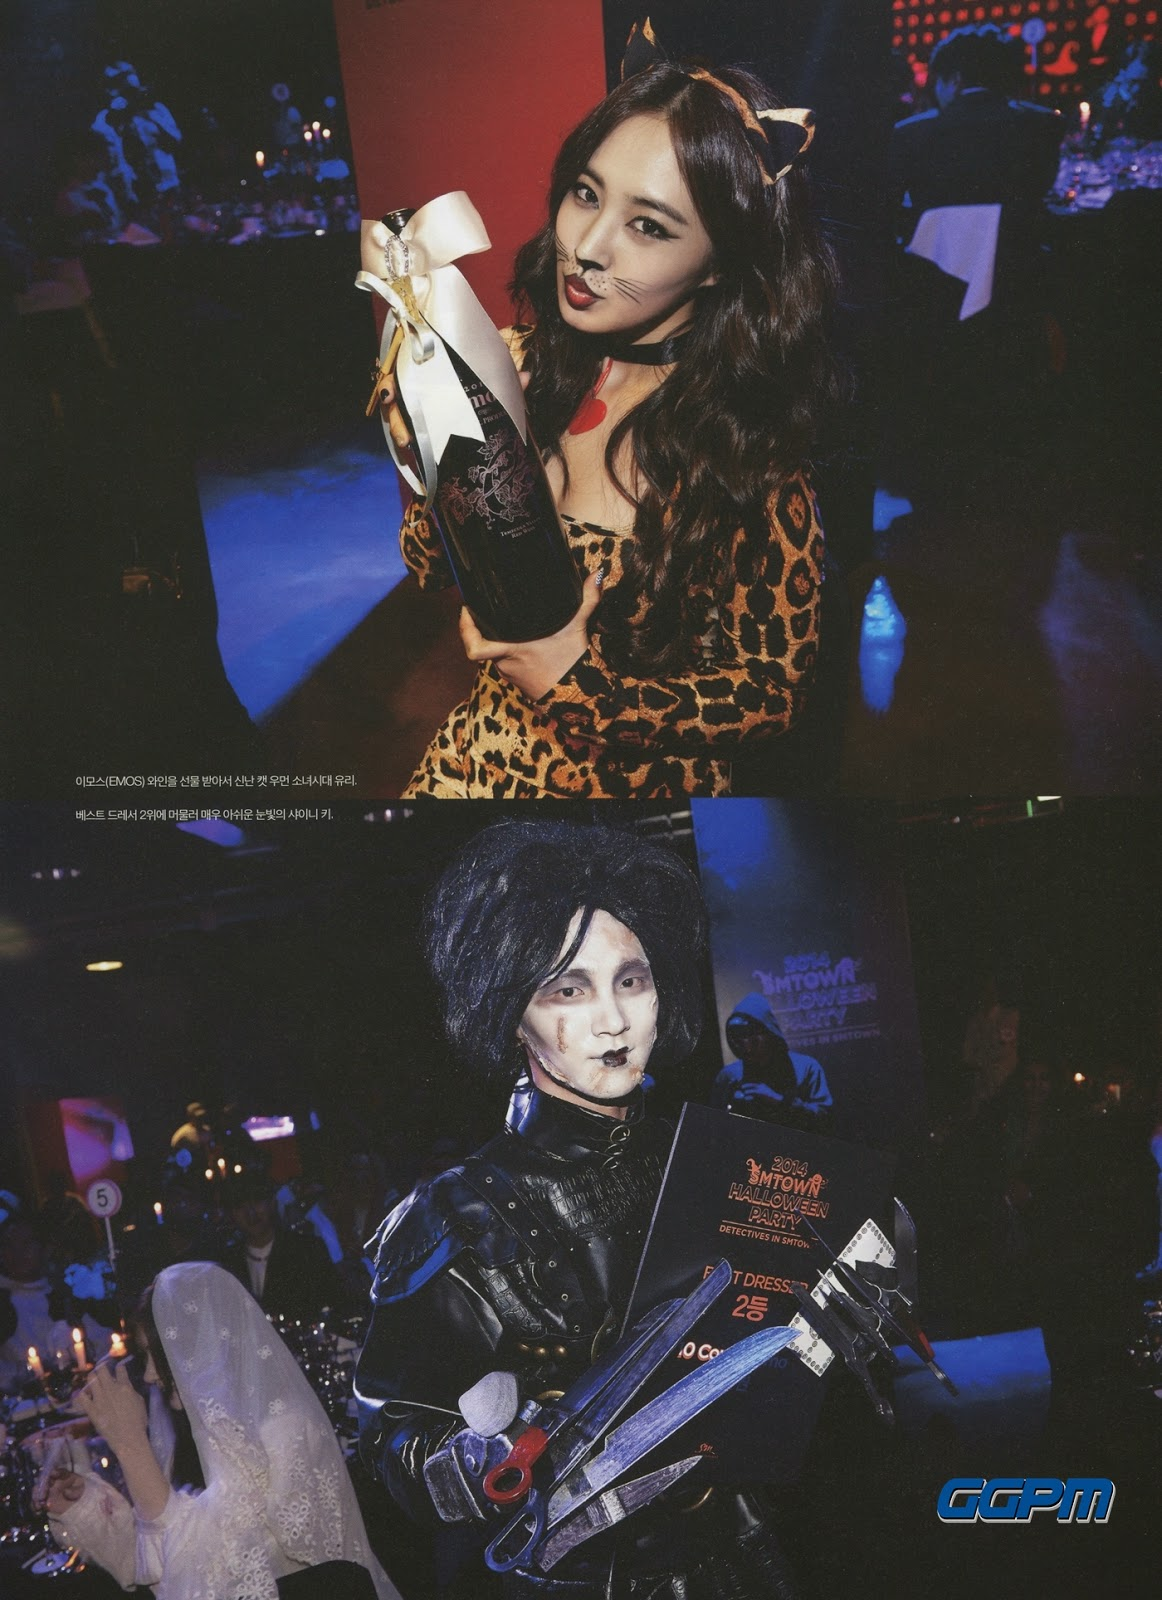 More of SNSD and f(x)'s pictures from SMTown's Halloween Party ...